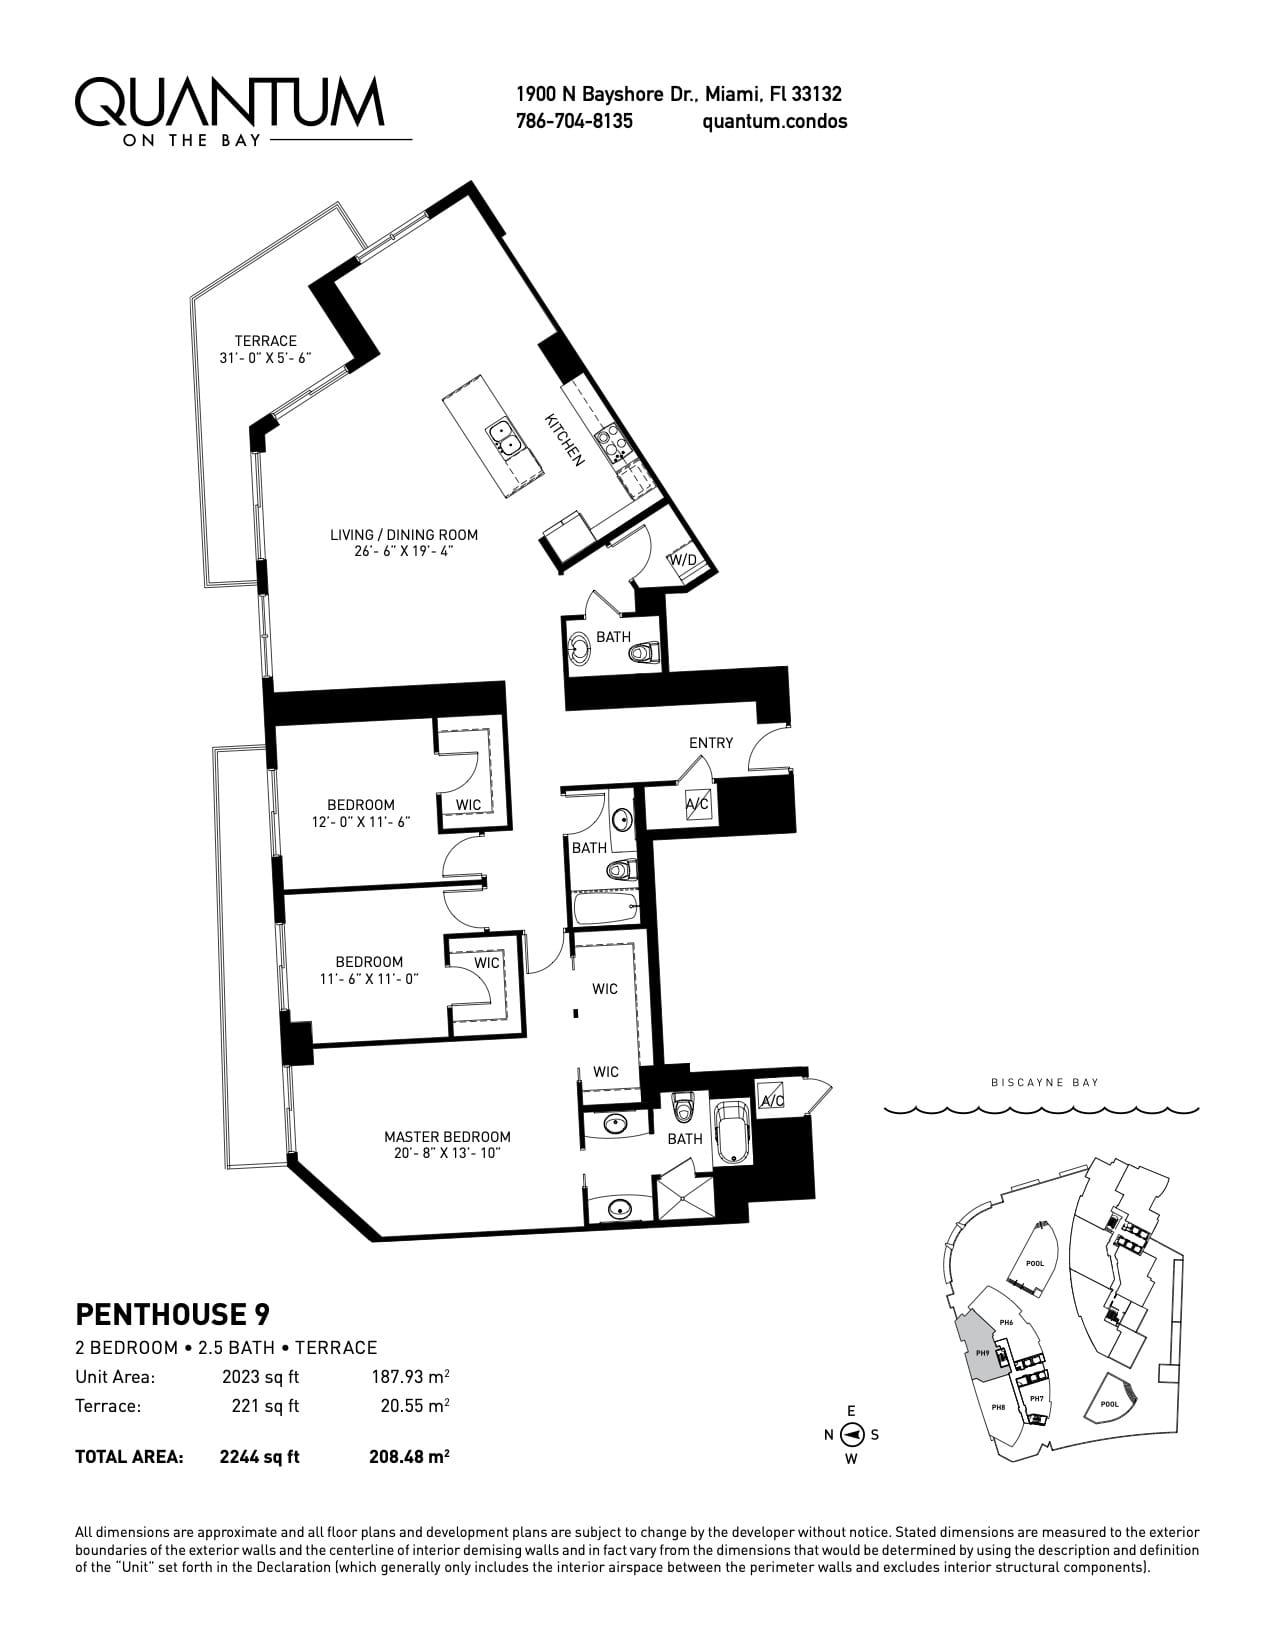 EMH3 Real Estate Quantum on the Bay Penthouse Floorplan